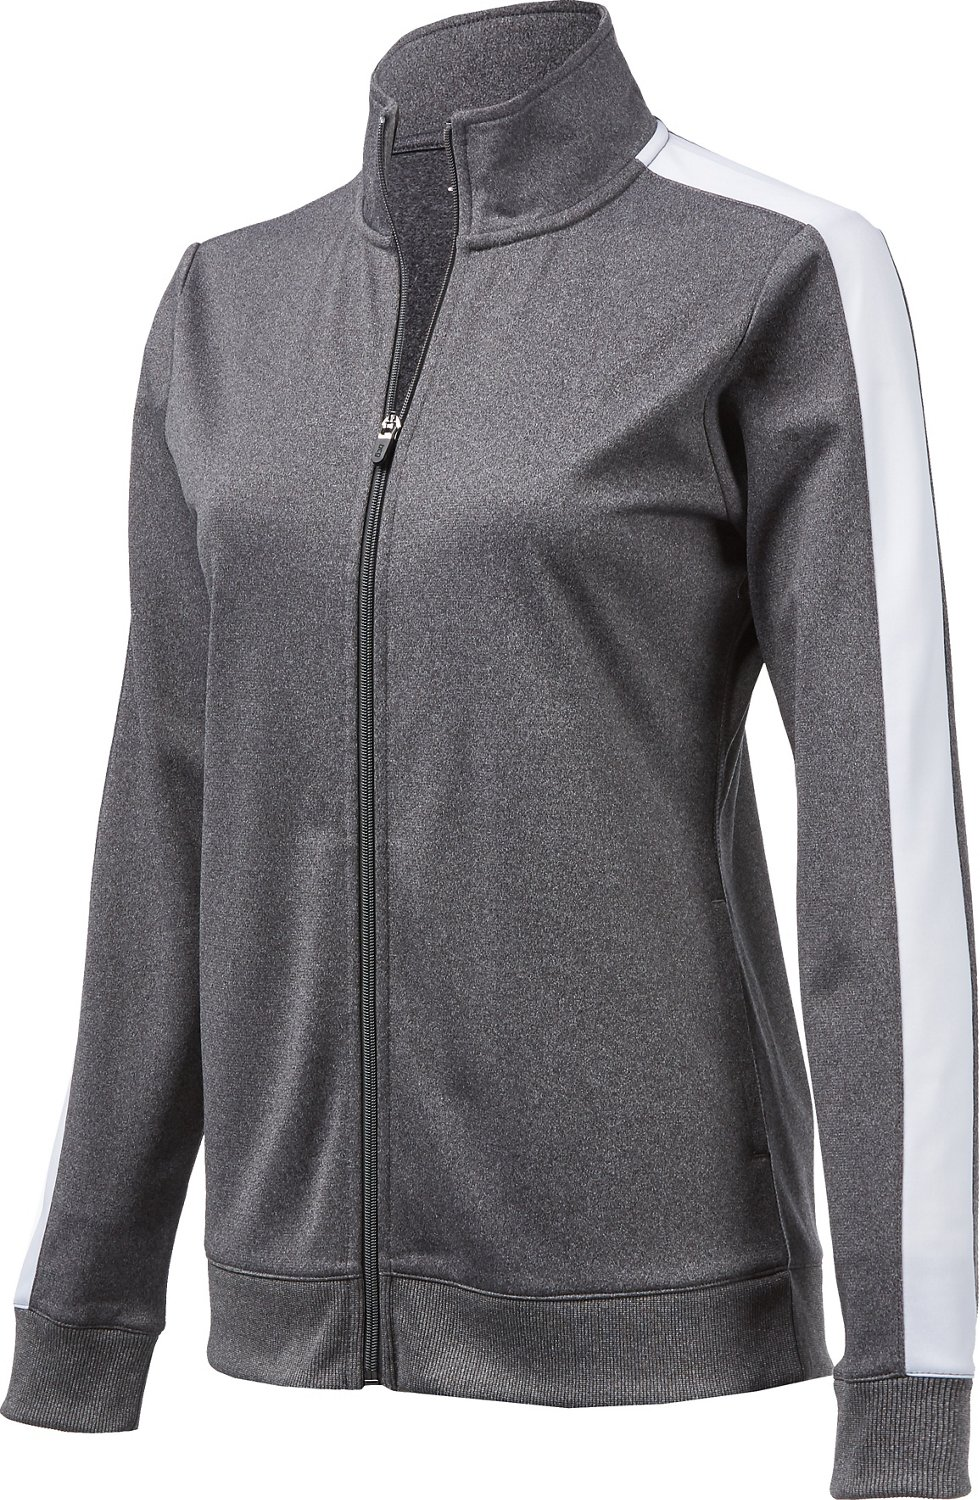 8b7ef8918c9 Display product reviews for BCG Women's Tricot Jacket